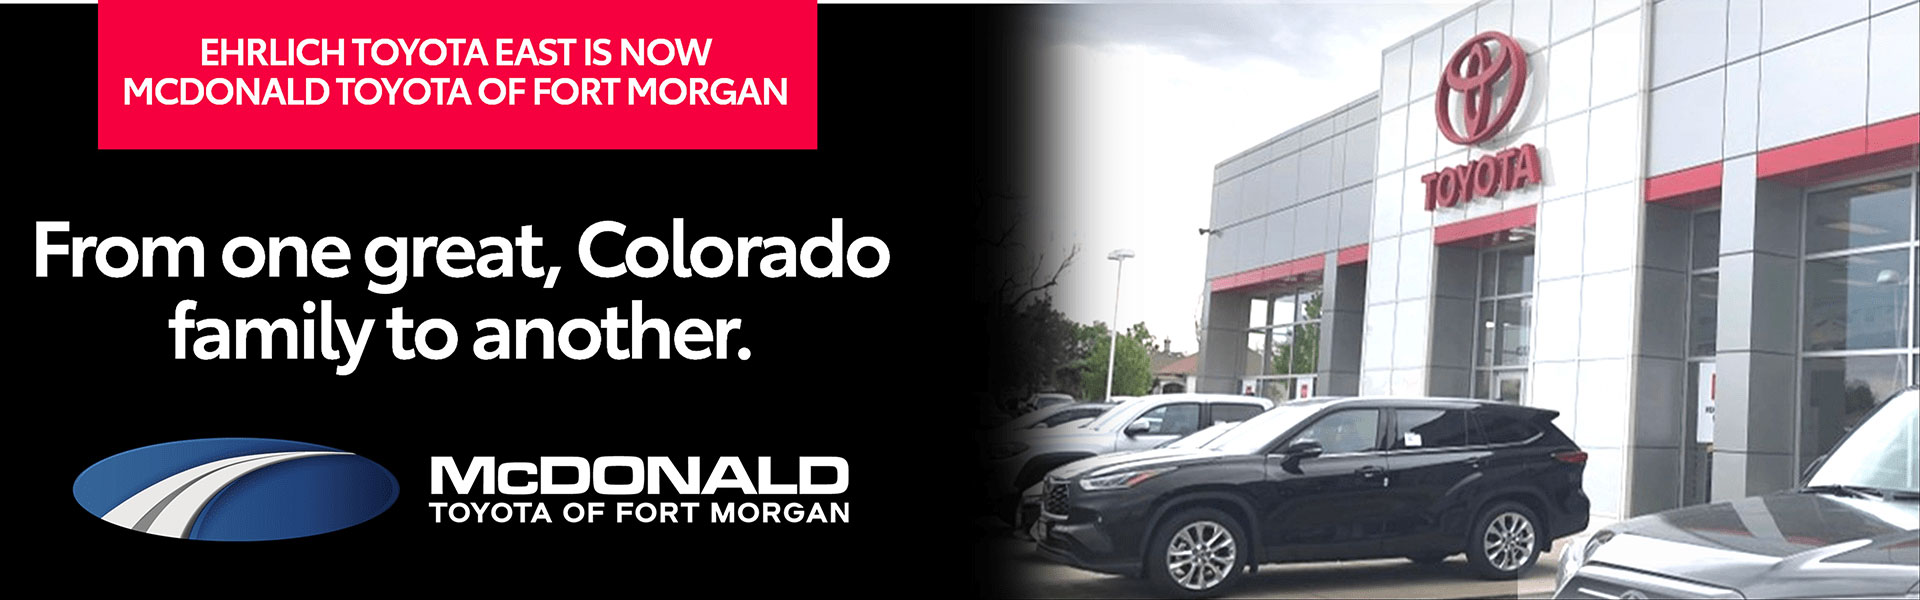 Ehrlich Toyota East is now McDonald Toyota of Fort Morgan. From one great, Colorado family to another. McDonald Fort Morgan.